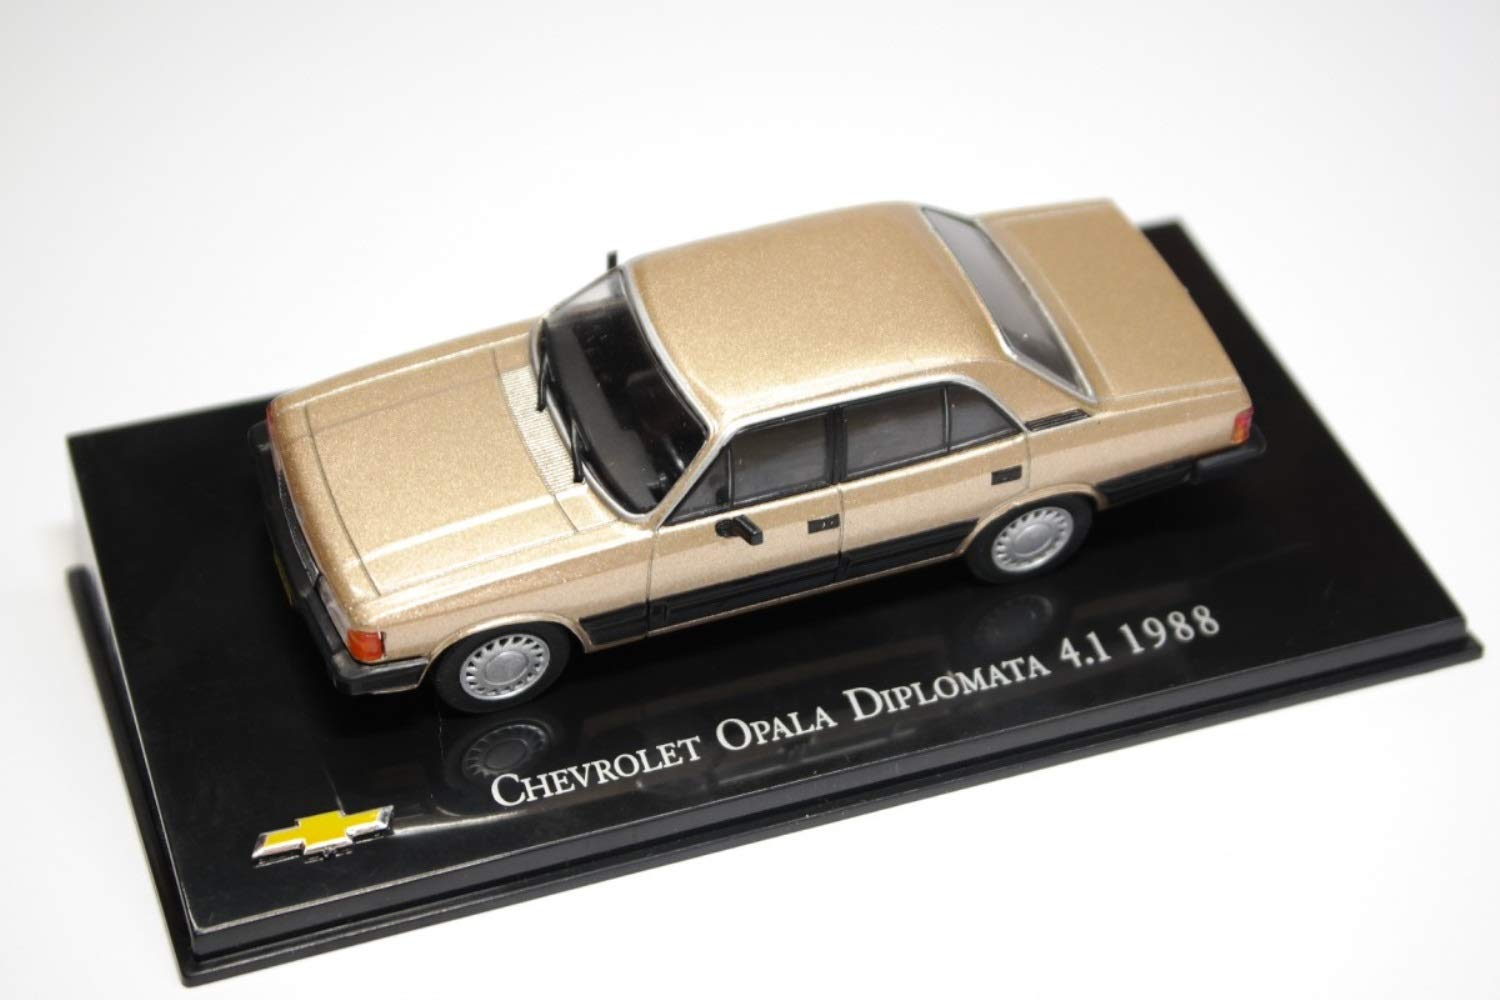 Chevrolet Opala Diplomata 4.1 Beige Metallic 1988 Year - Executive Car - 1/43 Scale Collectible Model Vehicle - Chevrolet Collection #18 by 1/43 AZEBUY - SEDANS